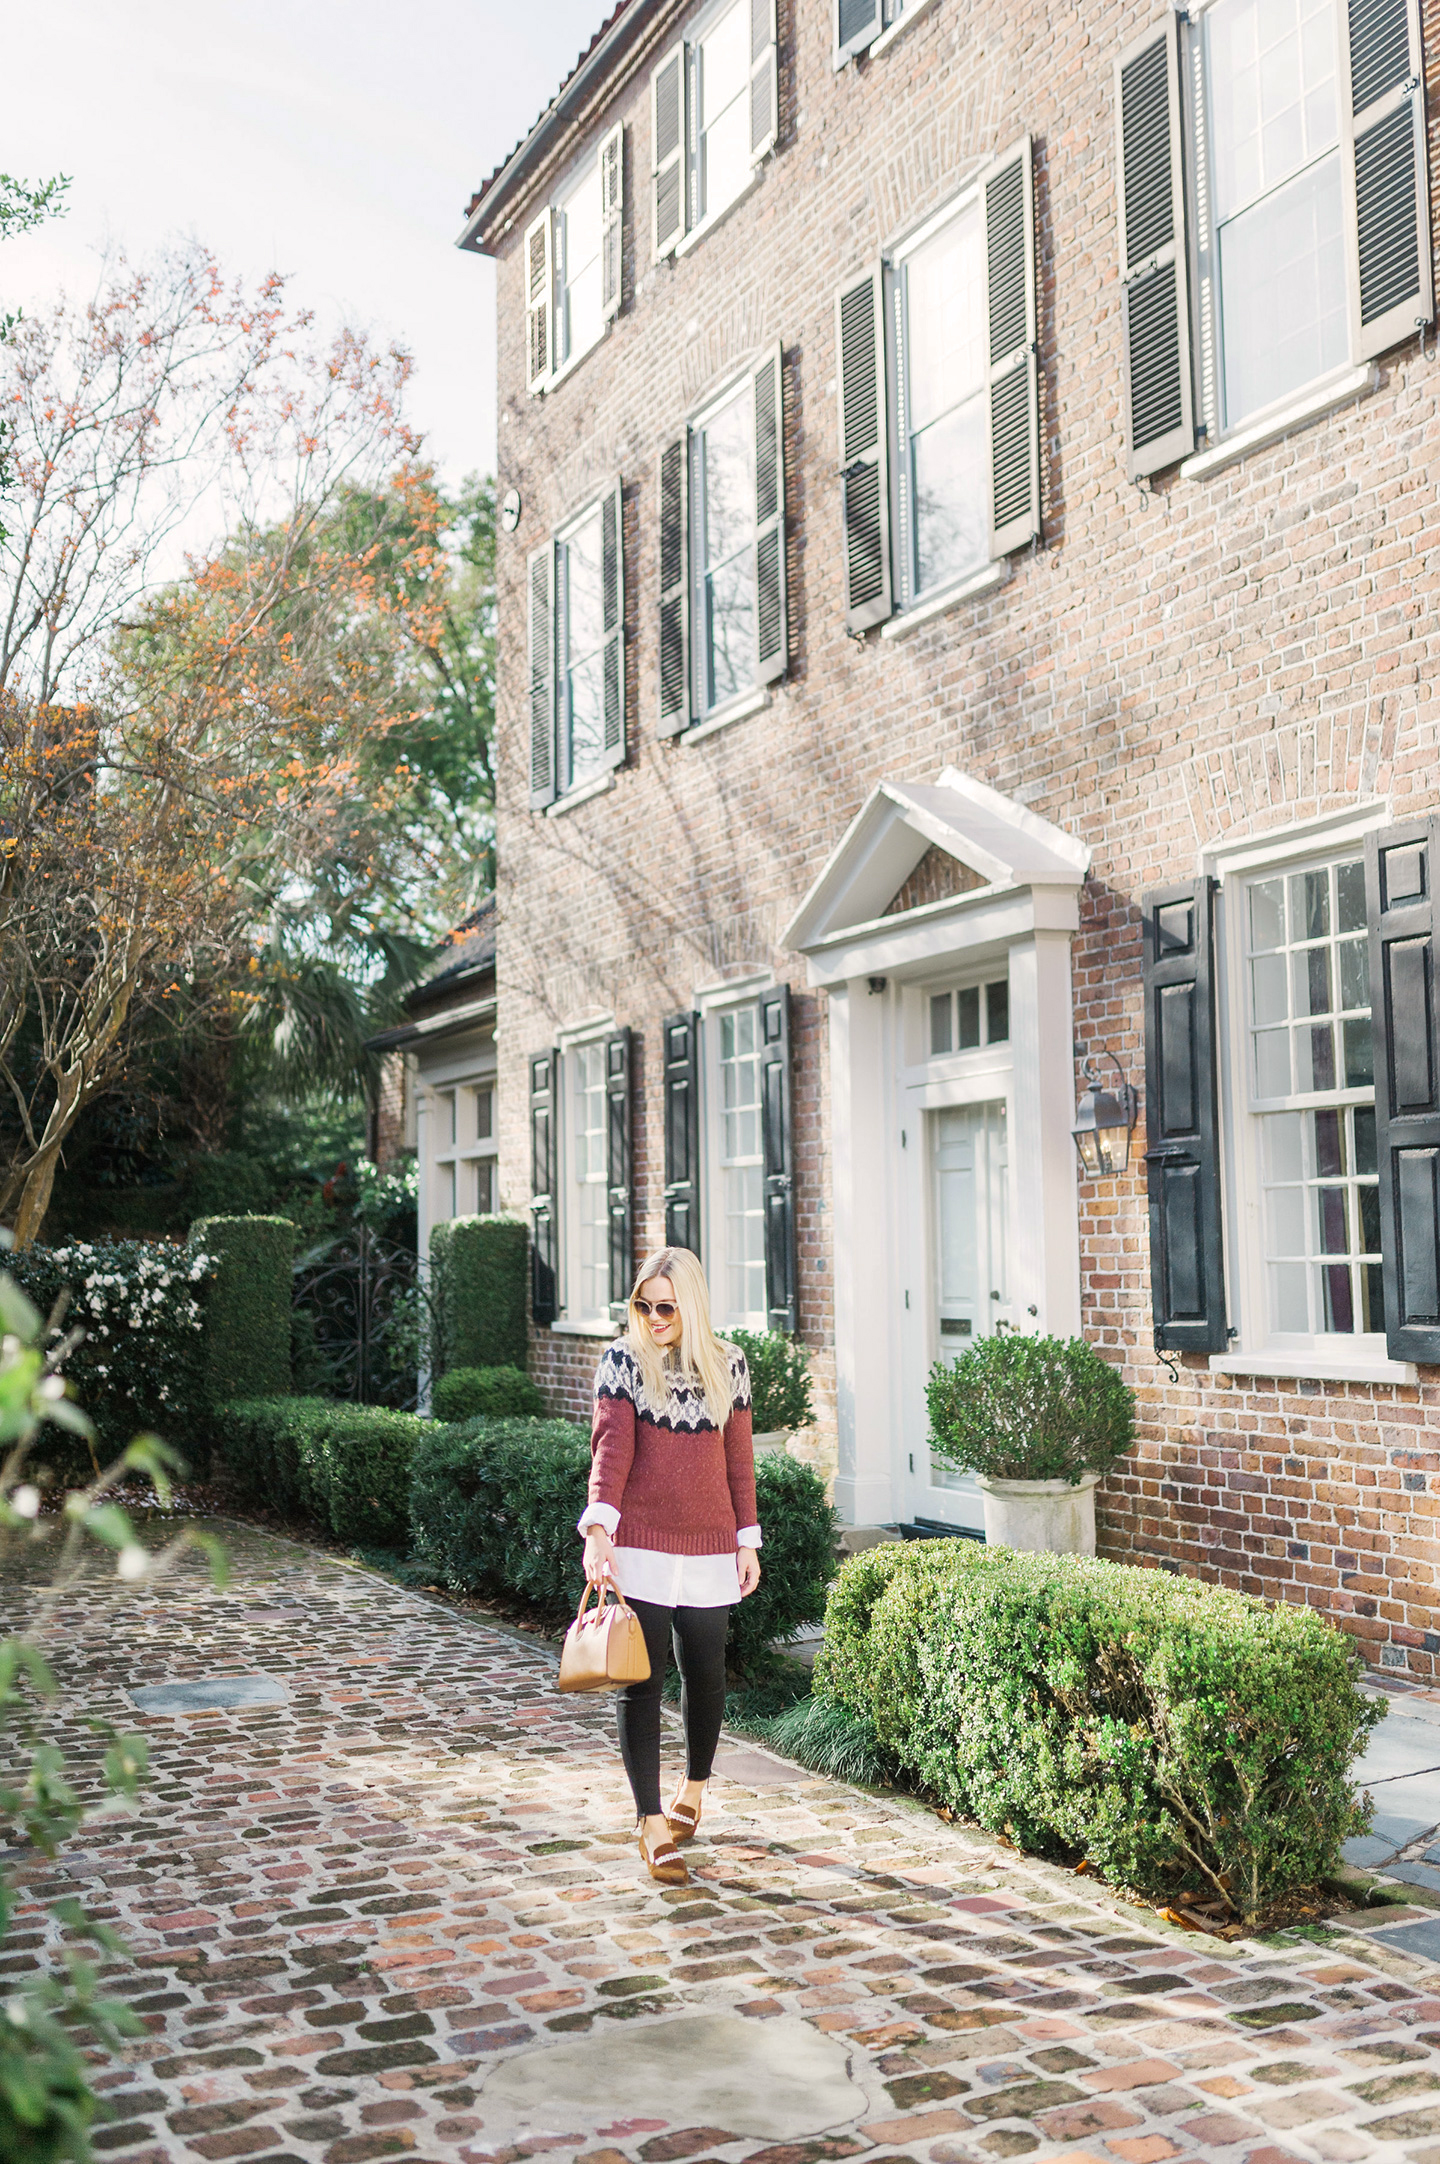 Fair Isle Sweater in Charleston